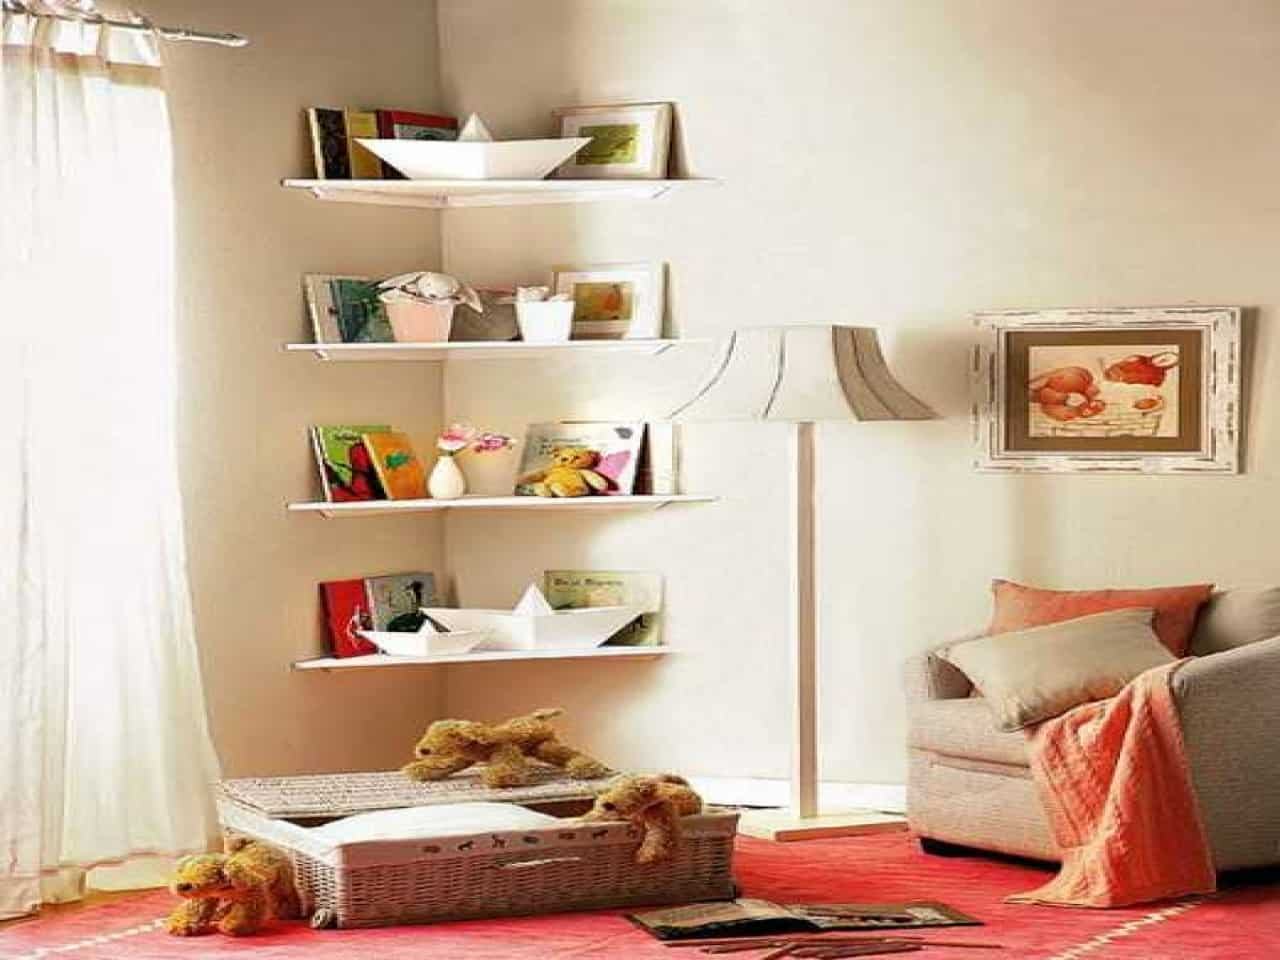 Space efficient corner shelves